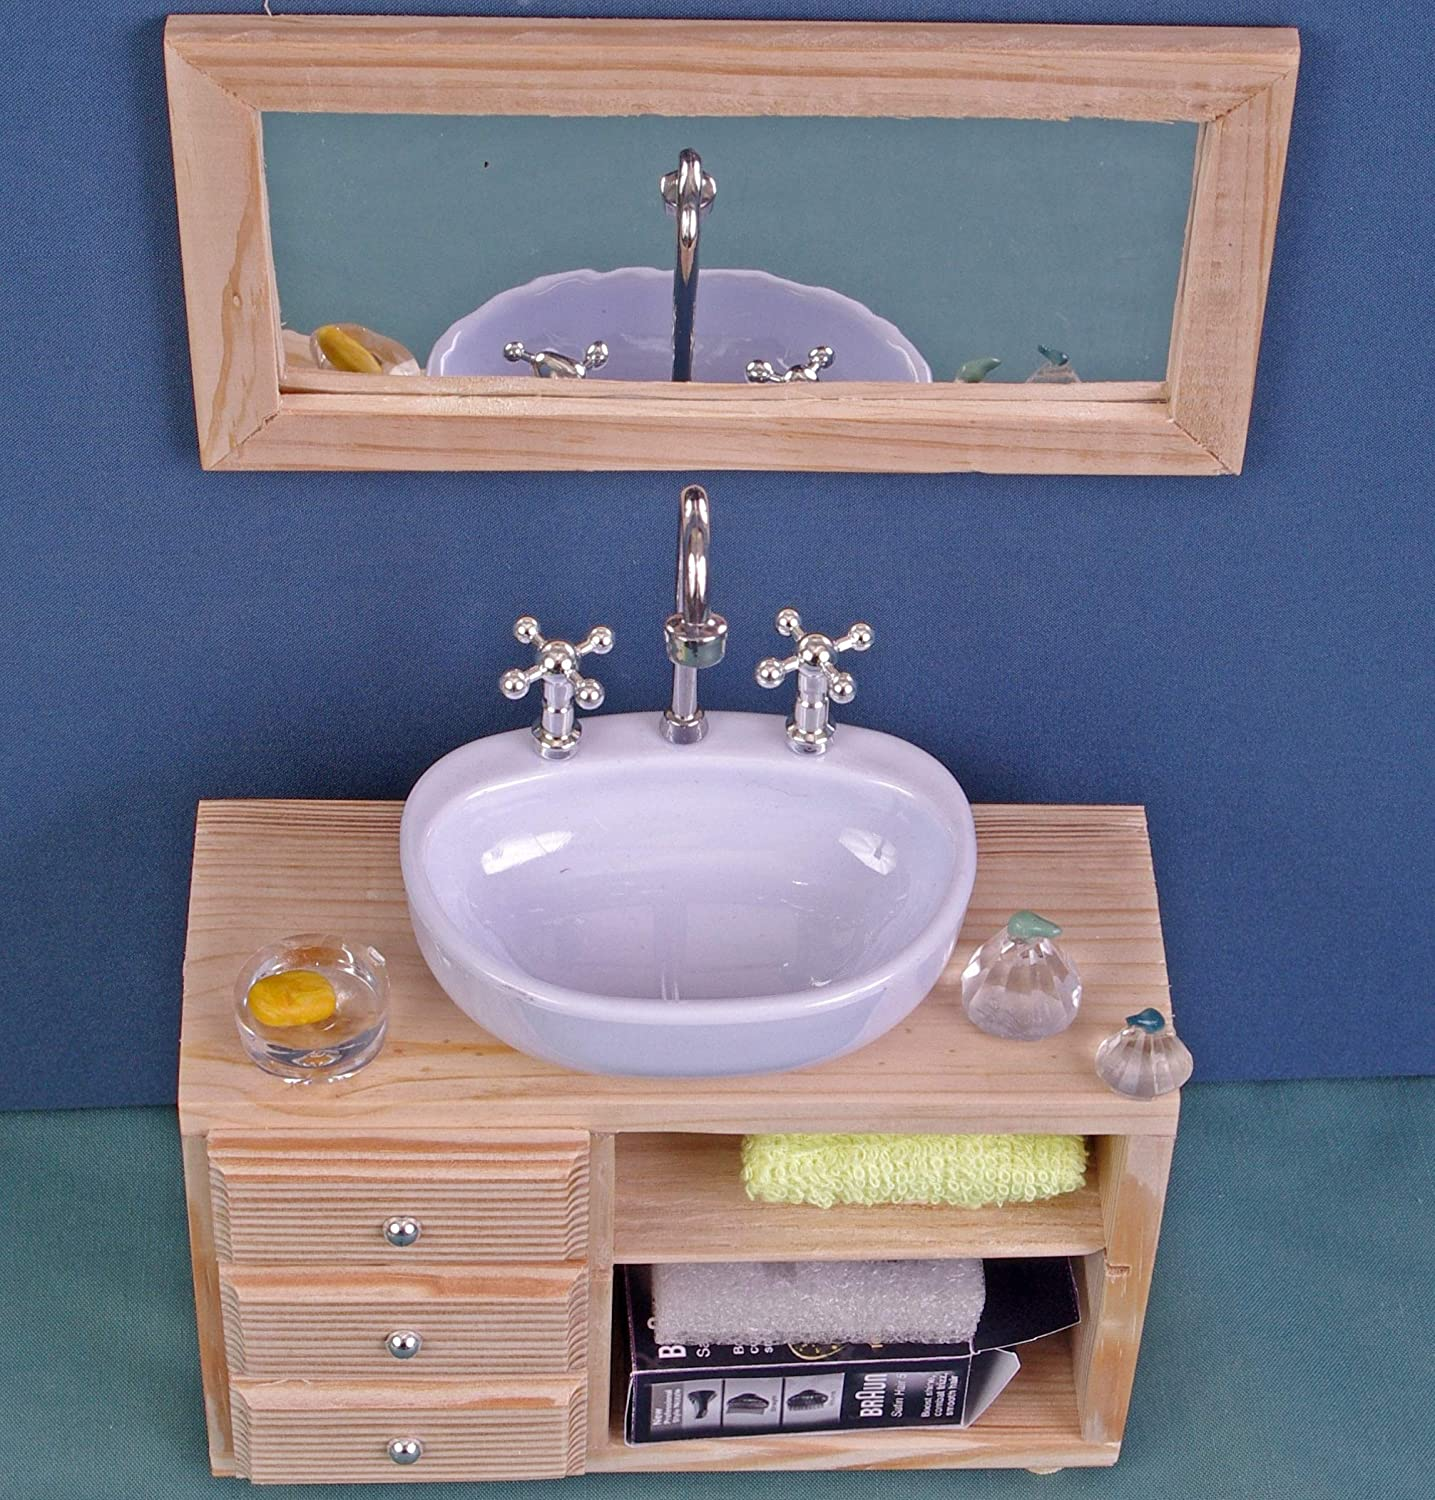 Amazon Com Ceramic Washbasin With Cabinet Bathroom Sink Dolls House Wooden Furniture 12 Inch Dolls For Barbie Blythe Bathroom Accessories Role Playing Game Collectible Miniature Handmade